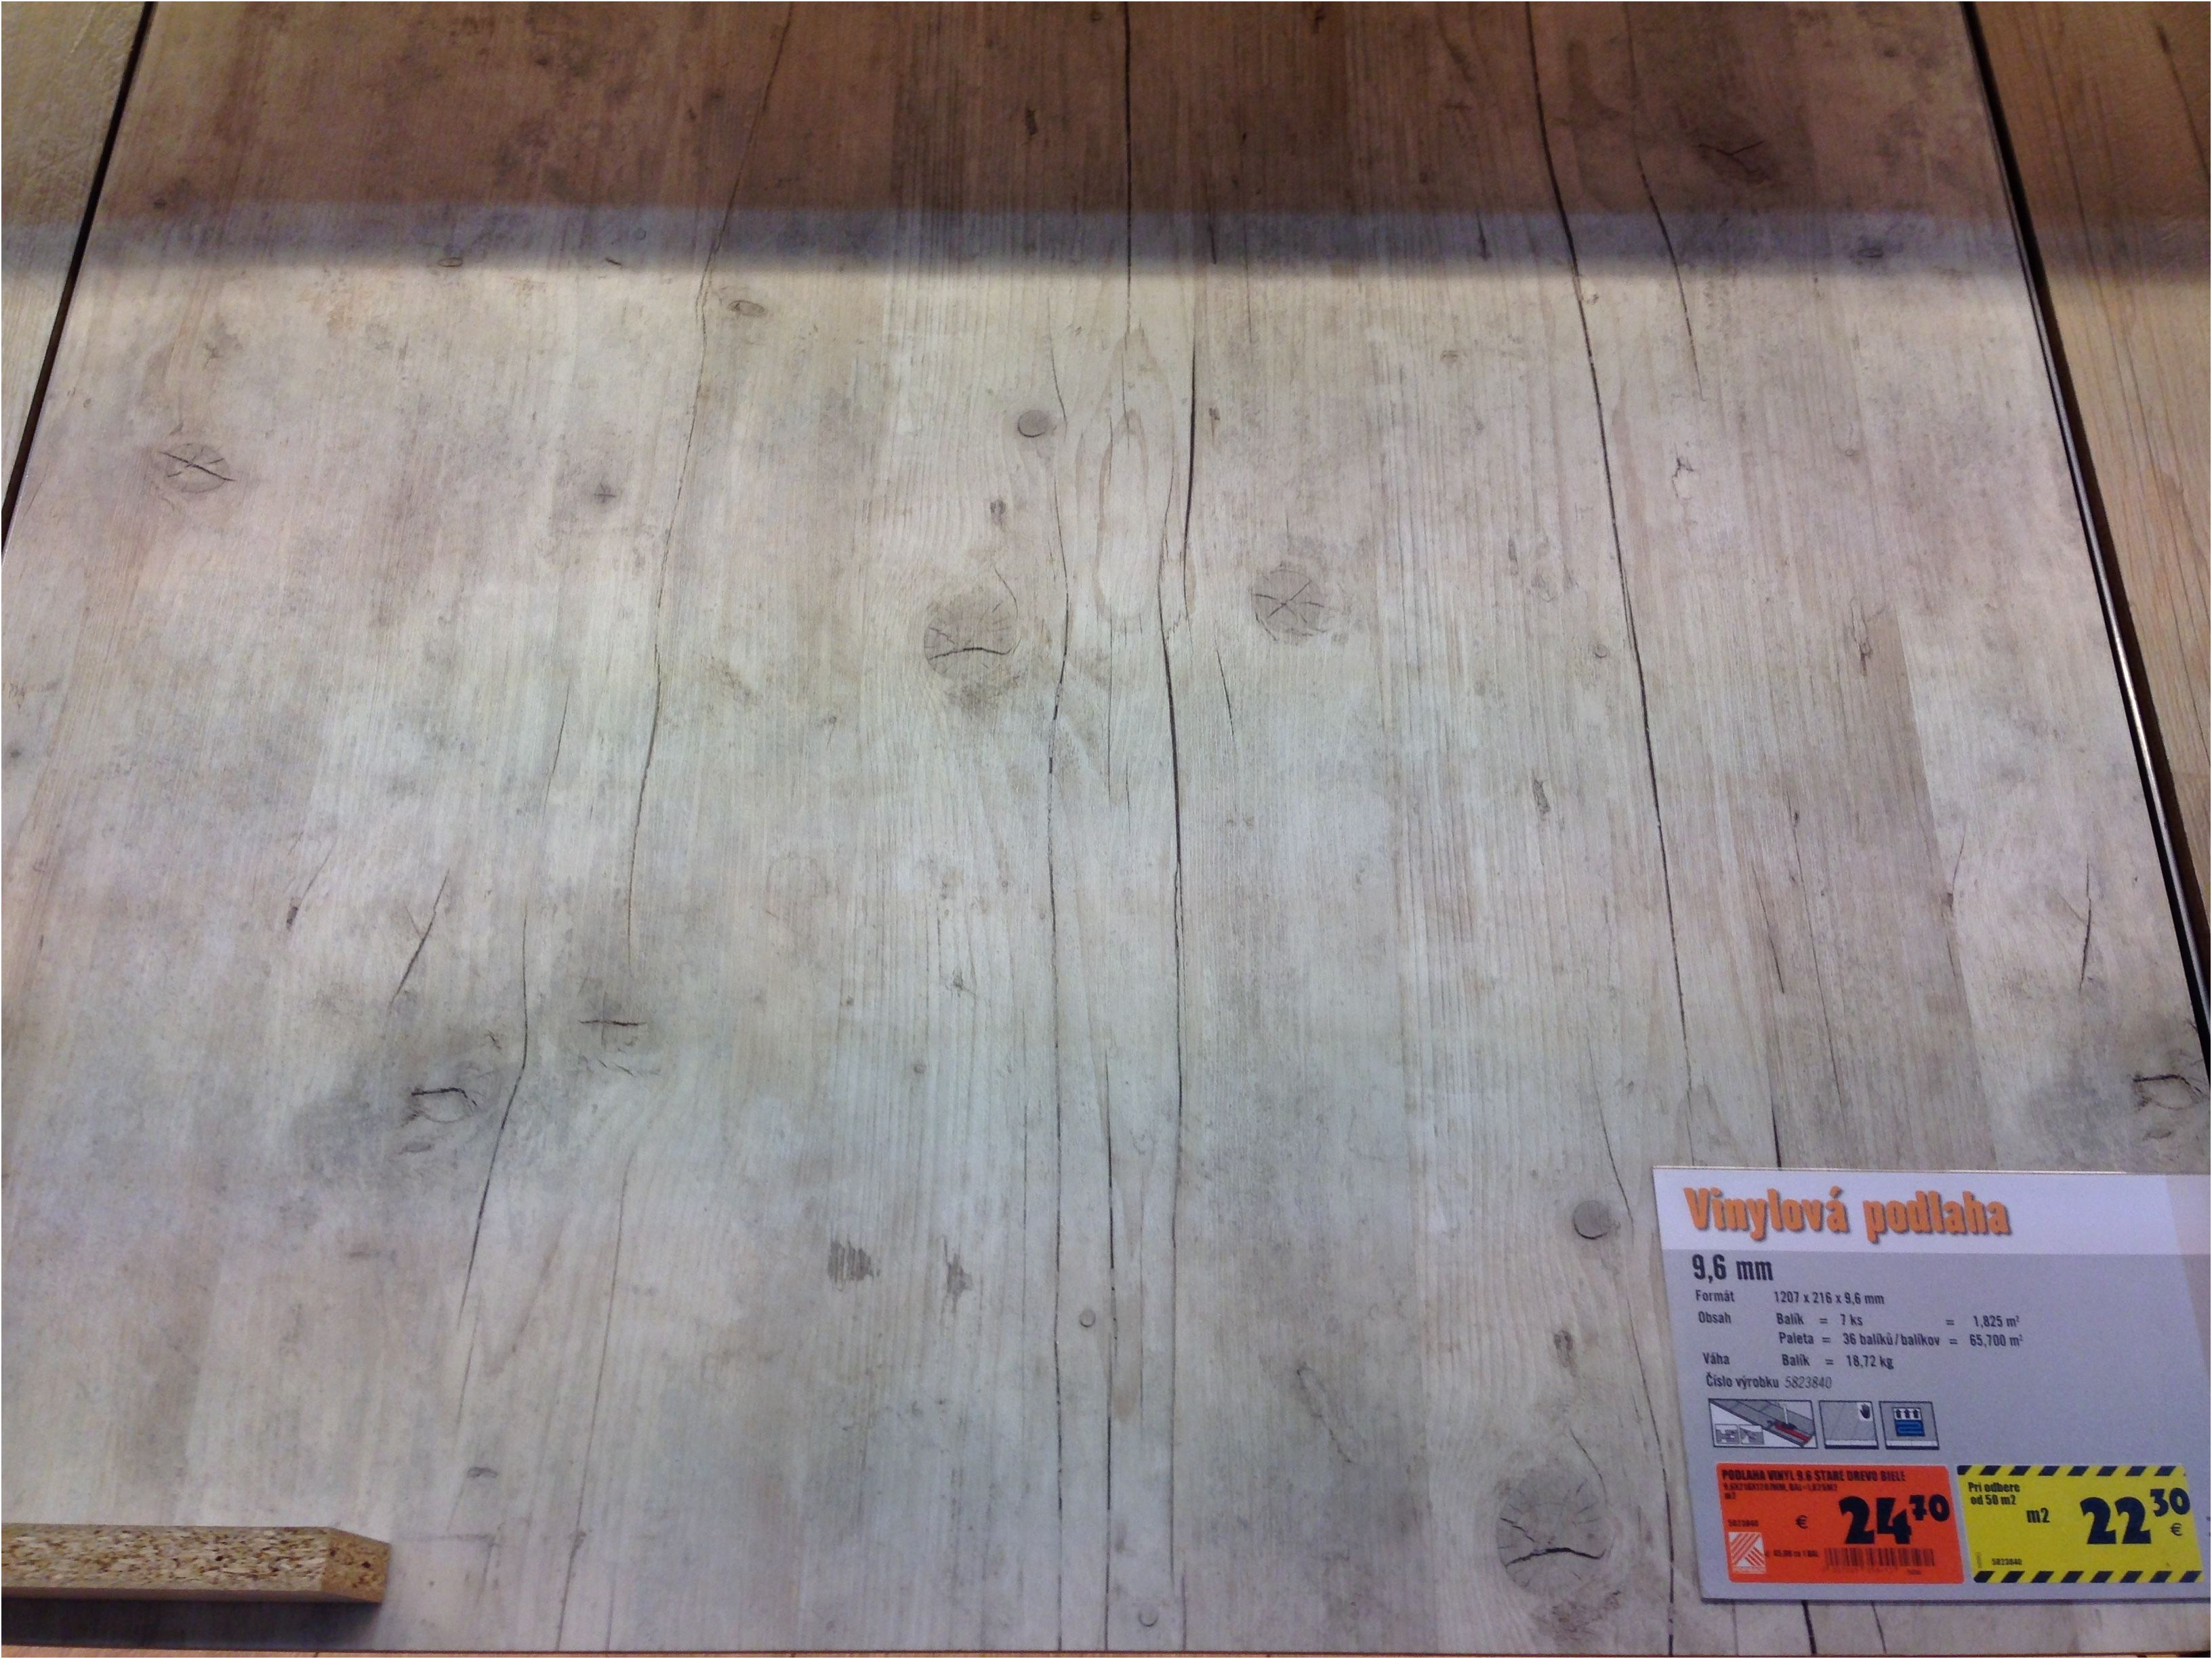 discount engineered hardwood flooring of the wood maker page 6 wood wallpaper regarding how to laminate wood flooring unique pin by erik chudy egger ideas of grey laminate wood